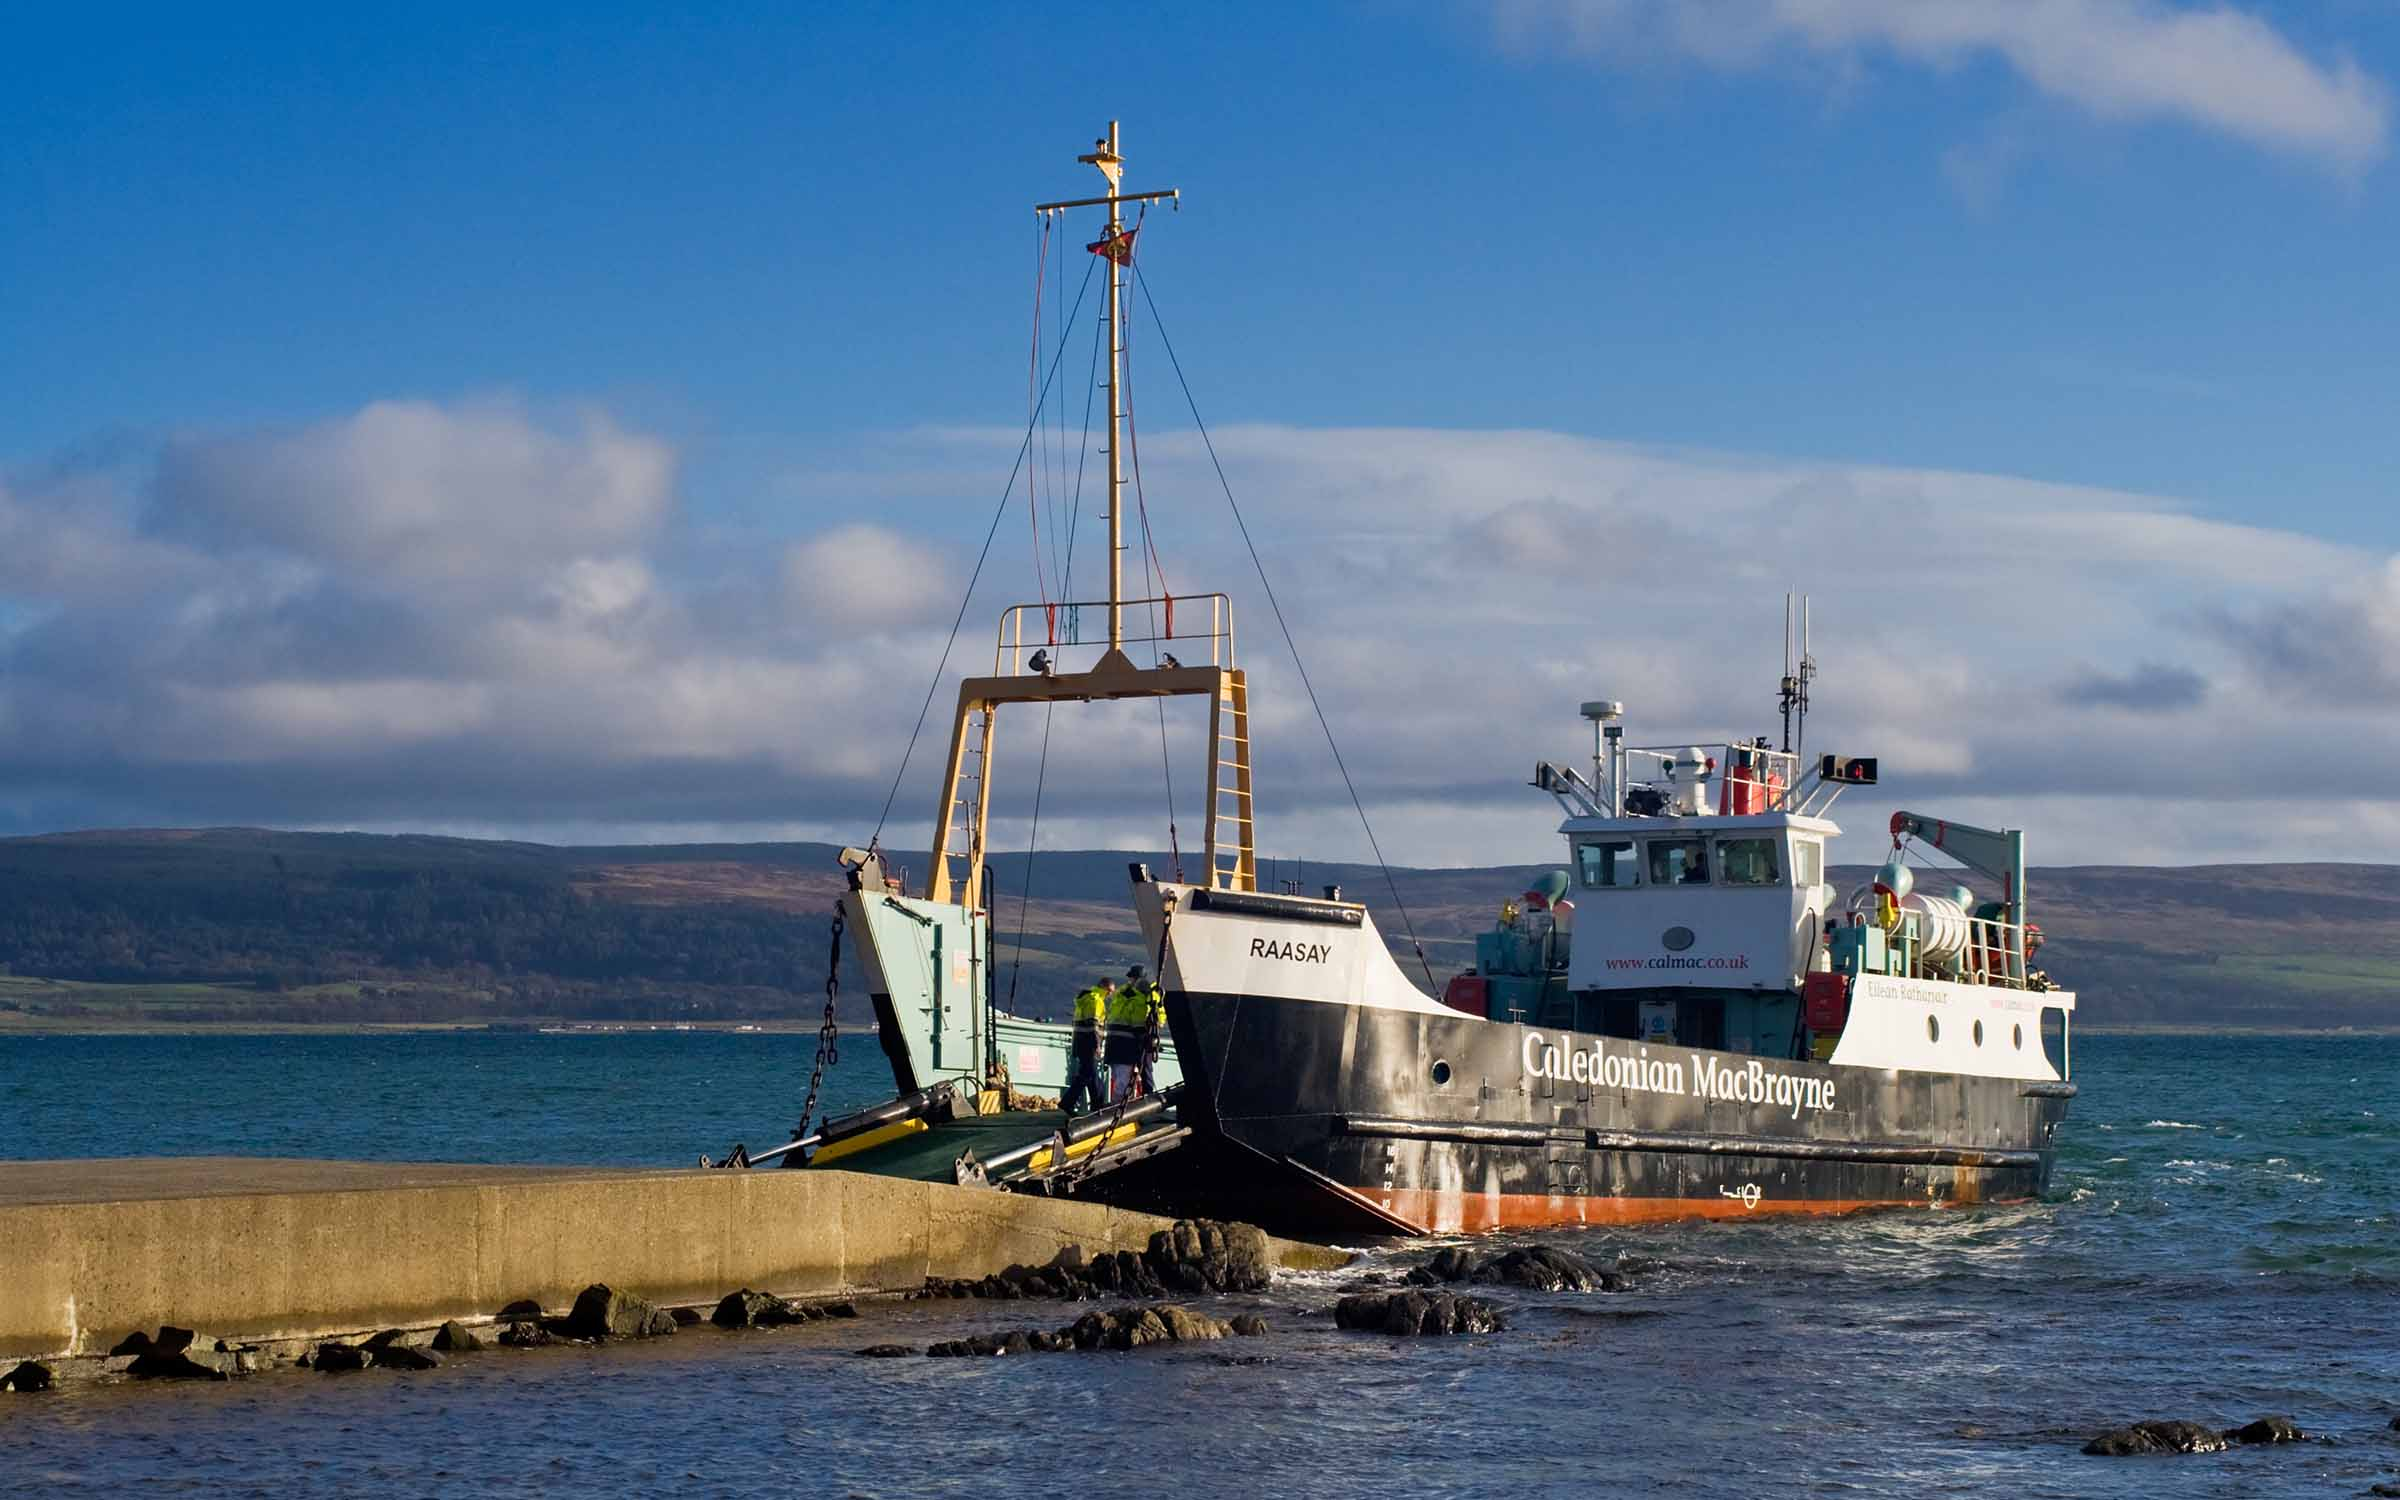 Raasay relieving at Gigha (Ships of CalMac)